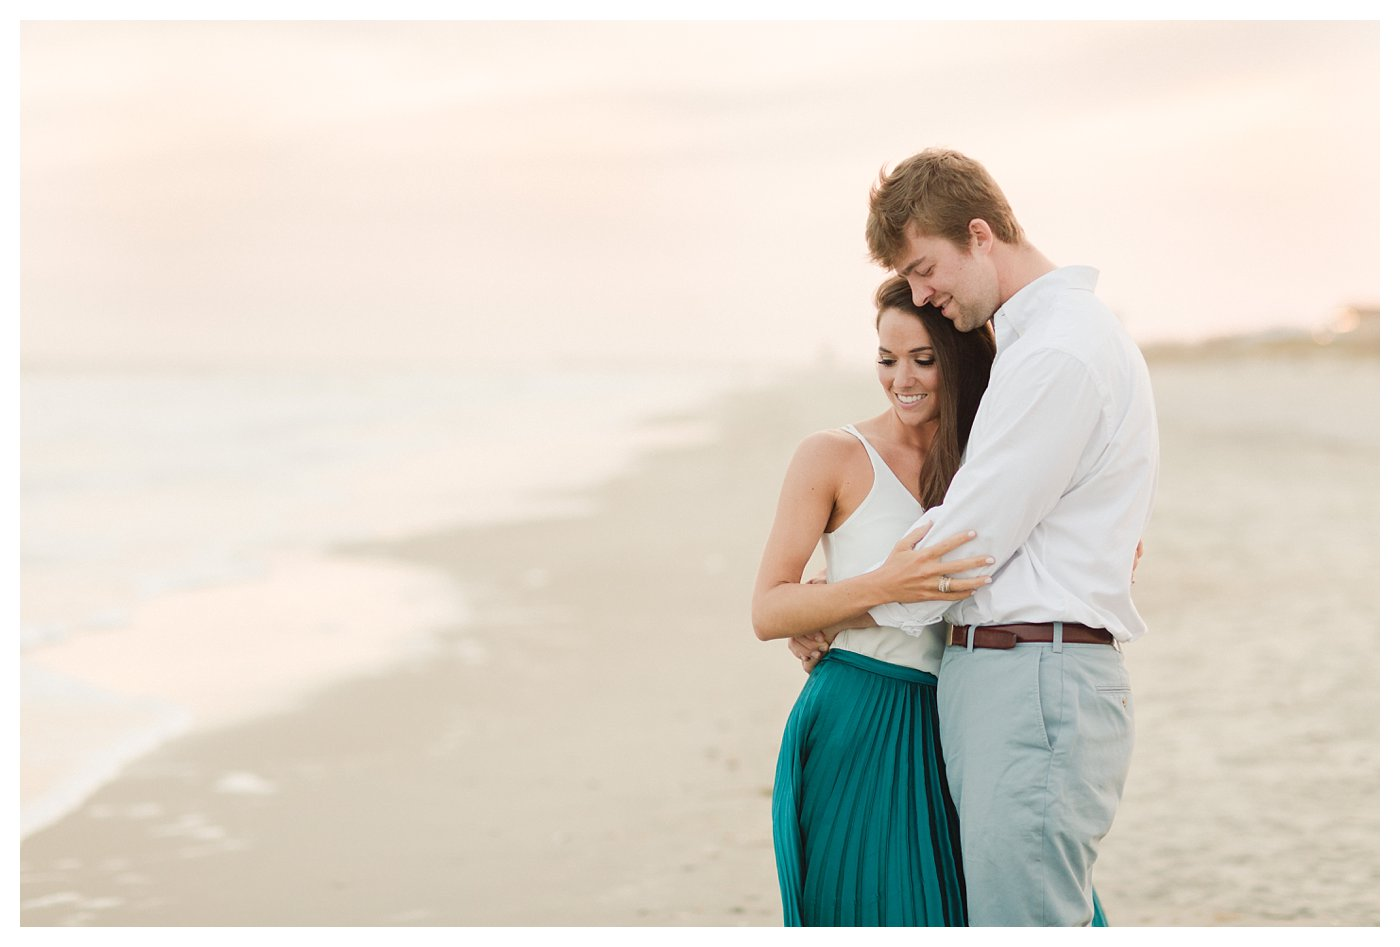 Ocean_Isle_NC_Beach_Coastal_Engagement_Session_Turqoise_White_Candlelit_0008.jpg